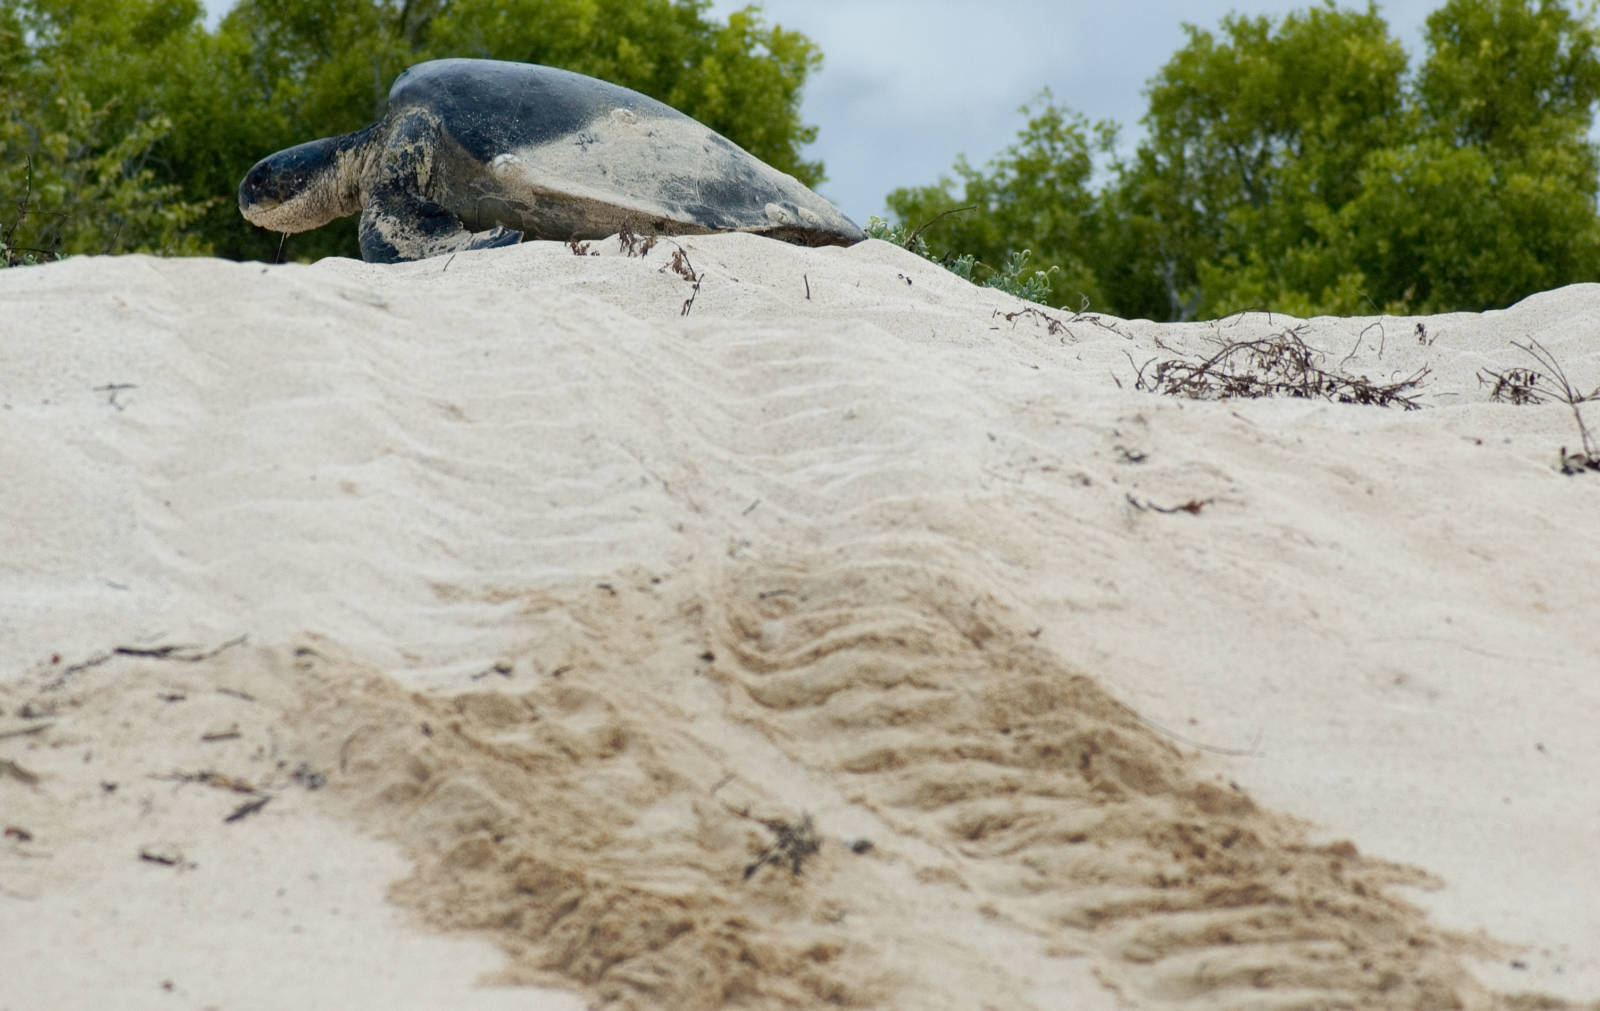 Green_sea_turtle_laying_eggs_(4202525004)